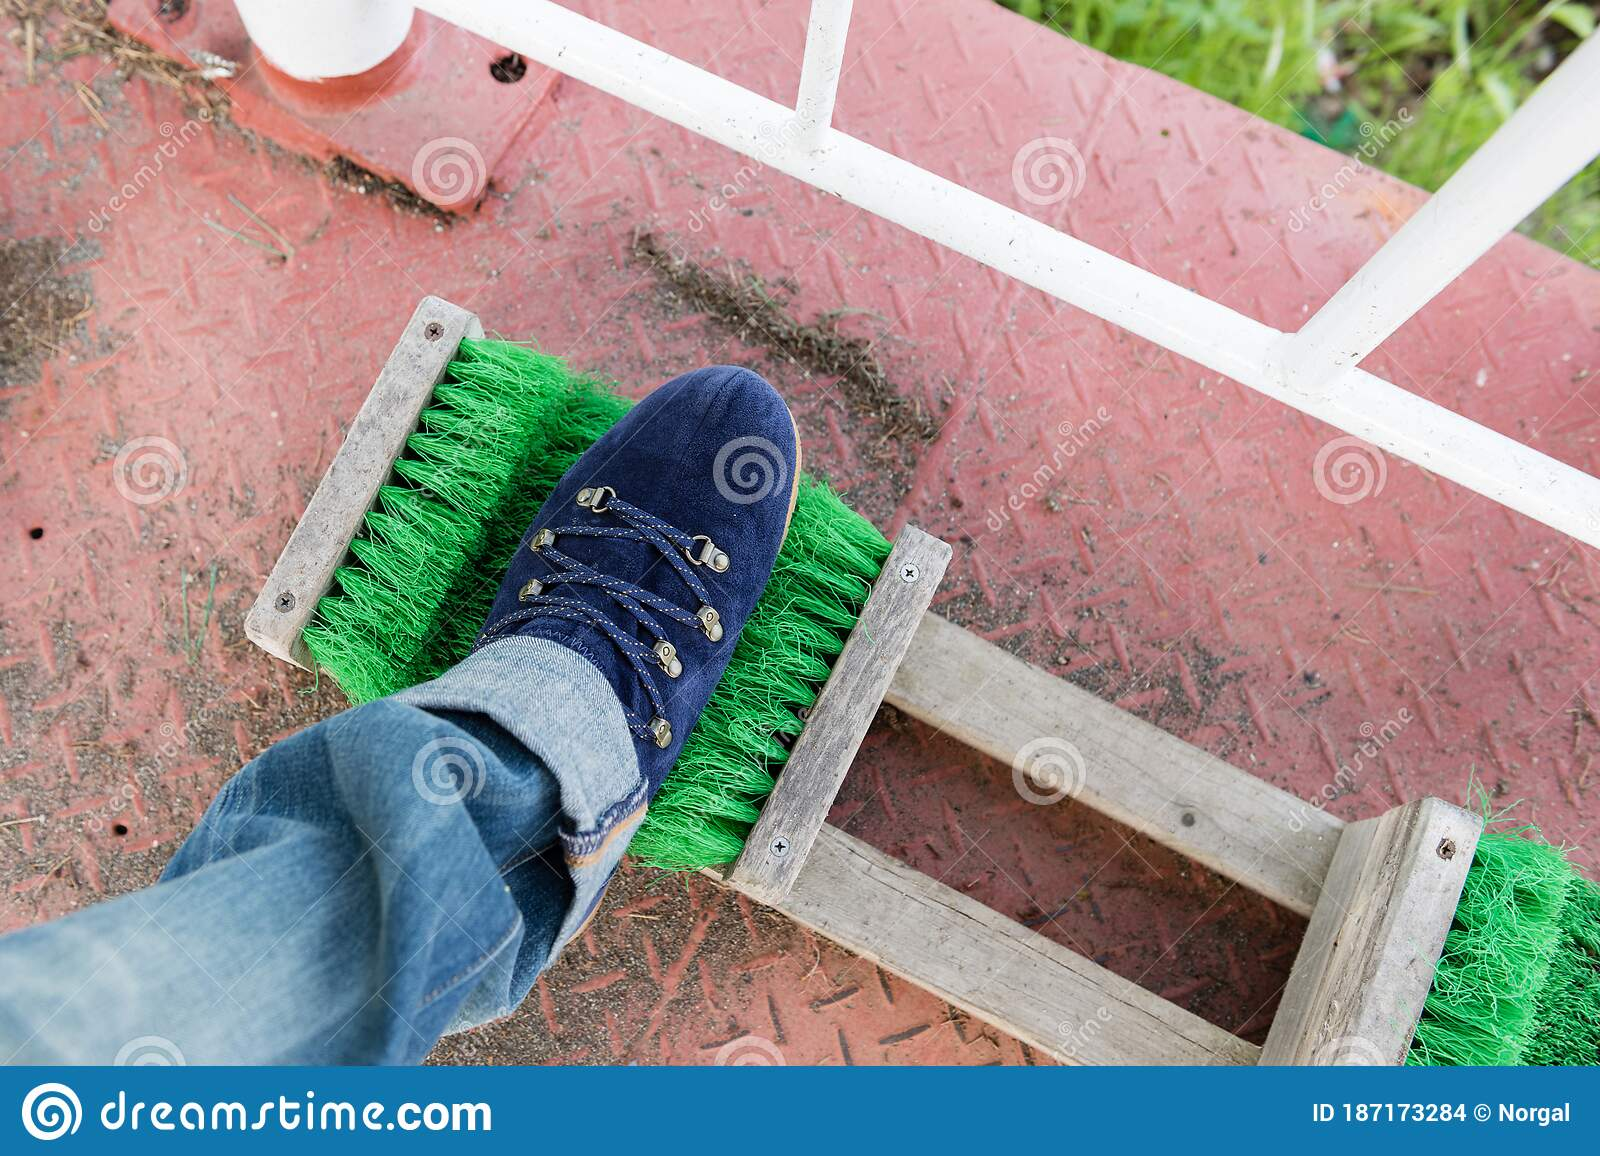 Shoe cleaner stock photo. Image of